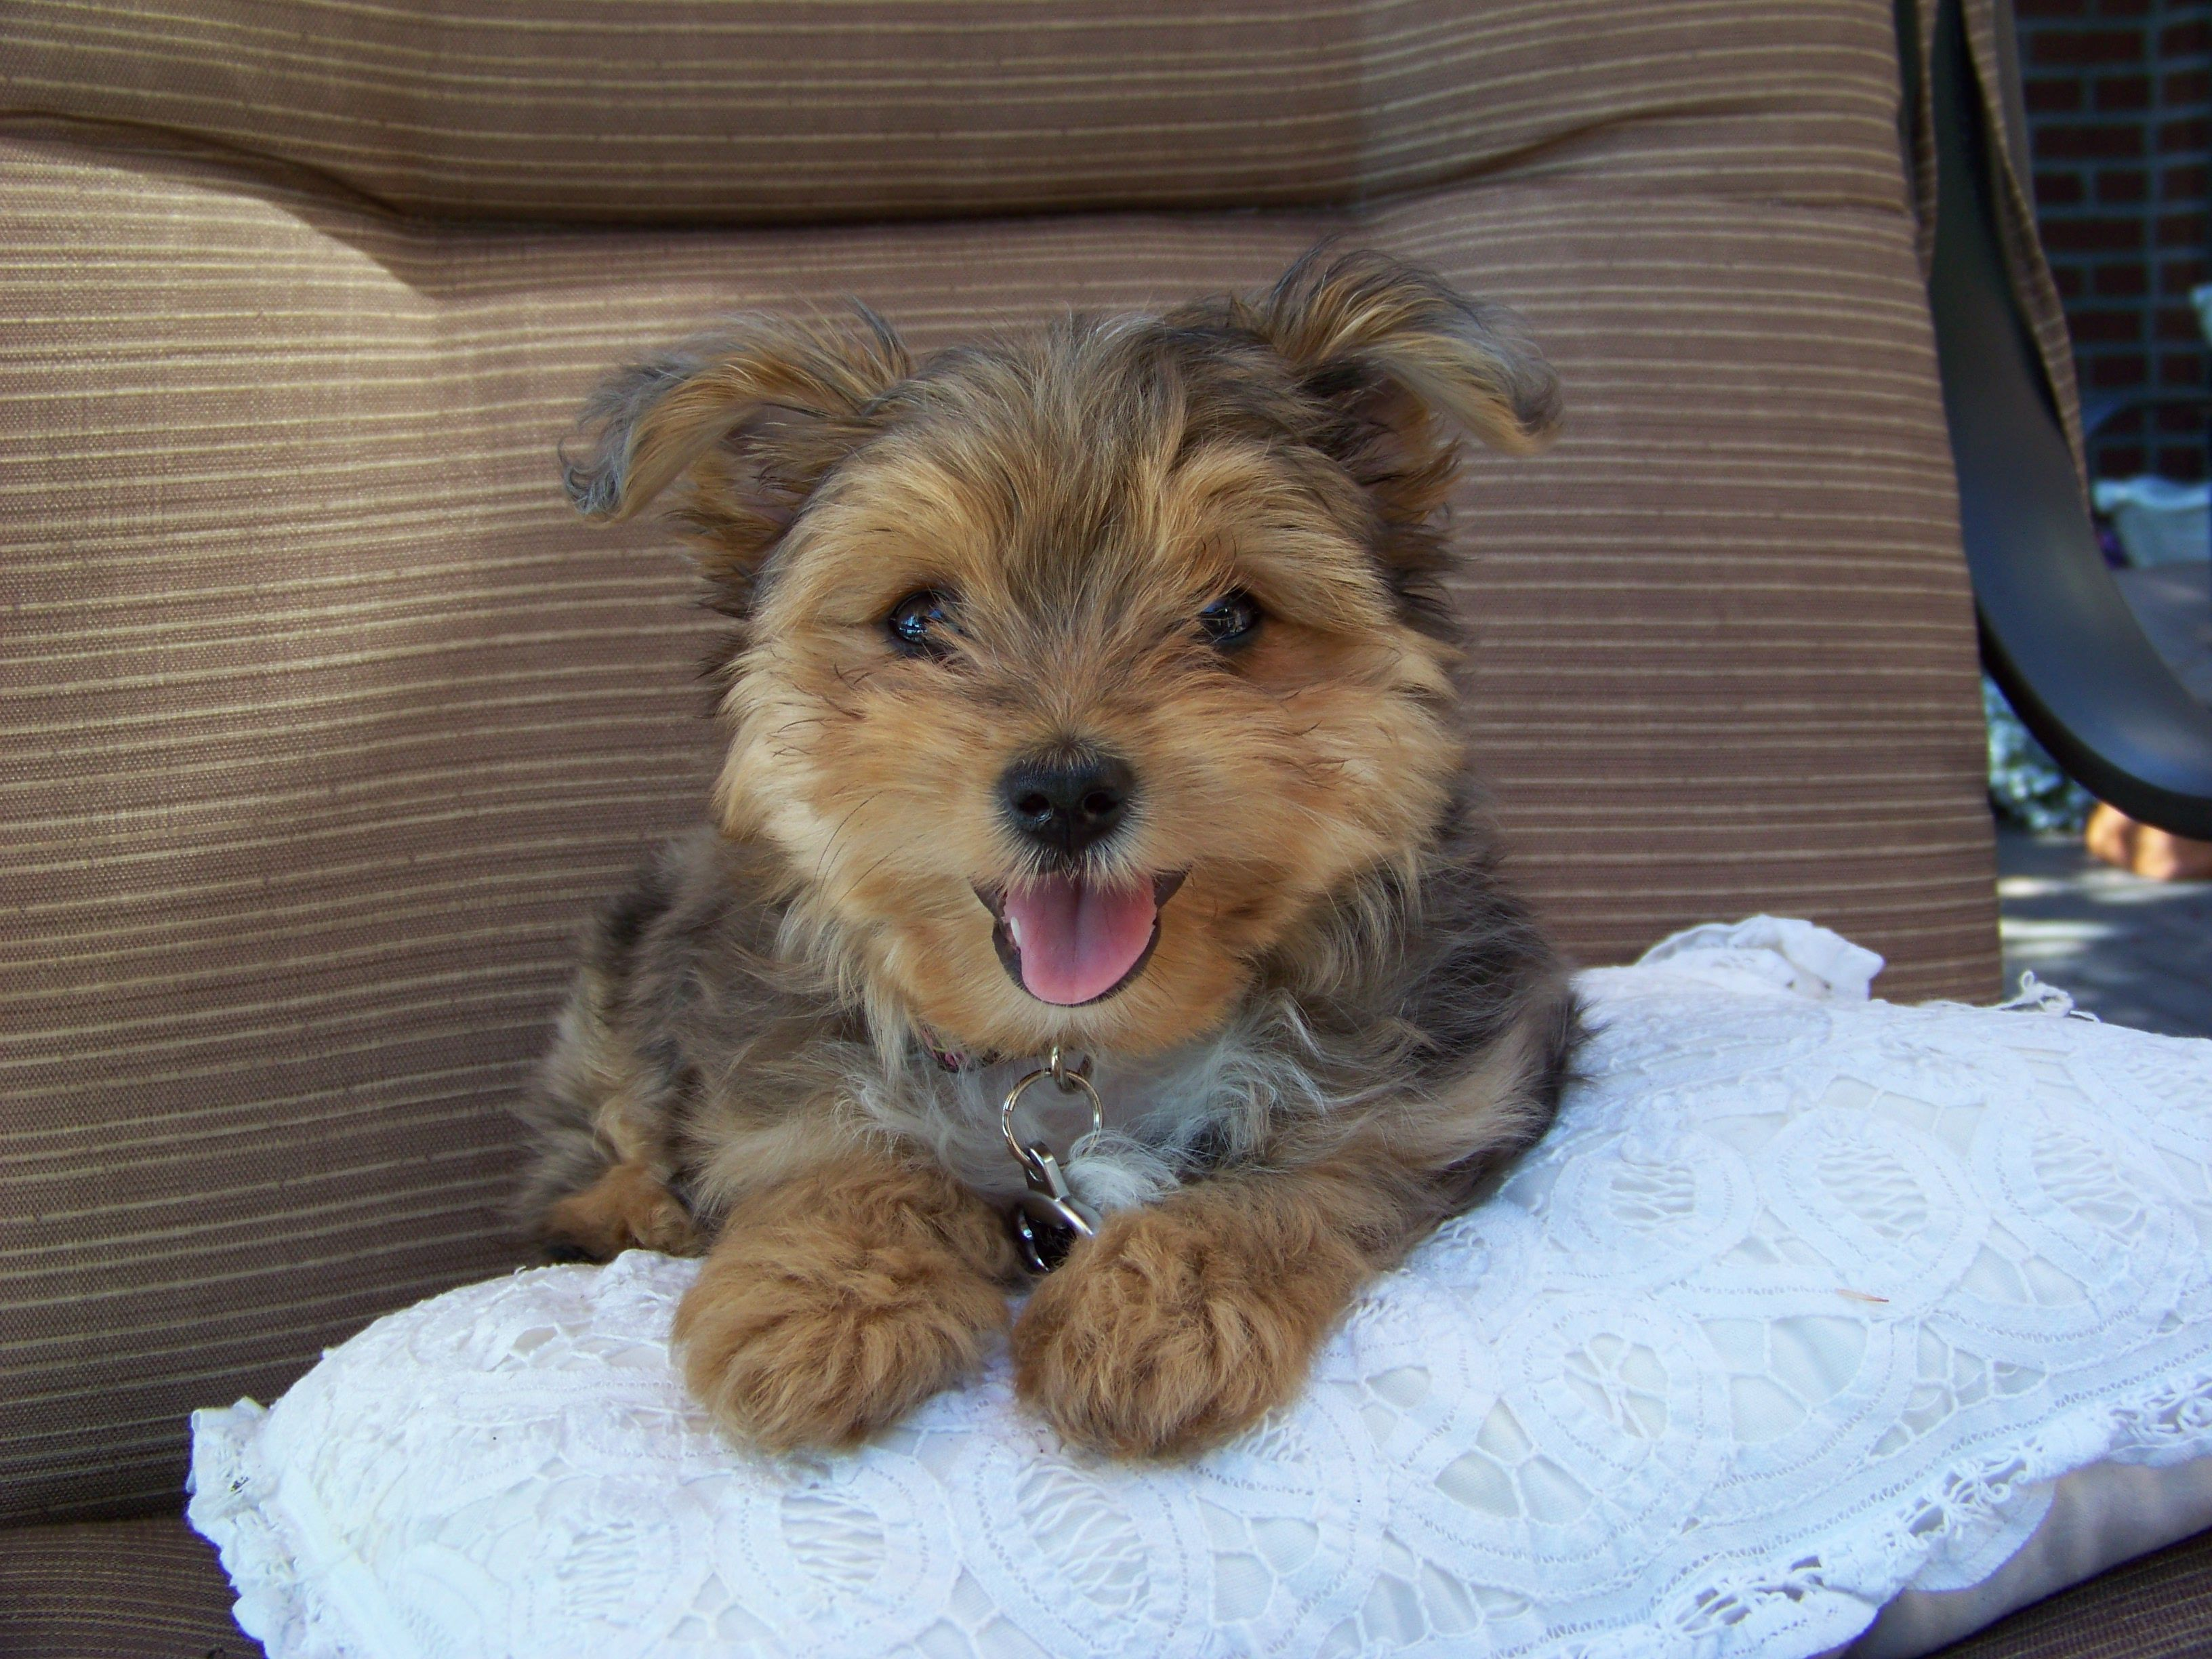 Lacey! Our Yaussie (Yorkie and Mini Aussie) Woof